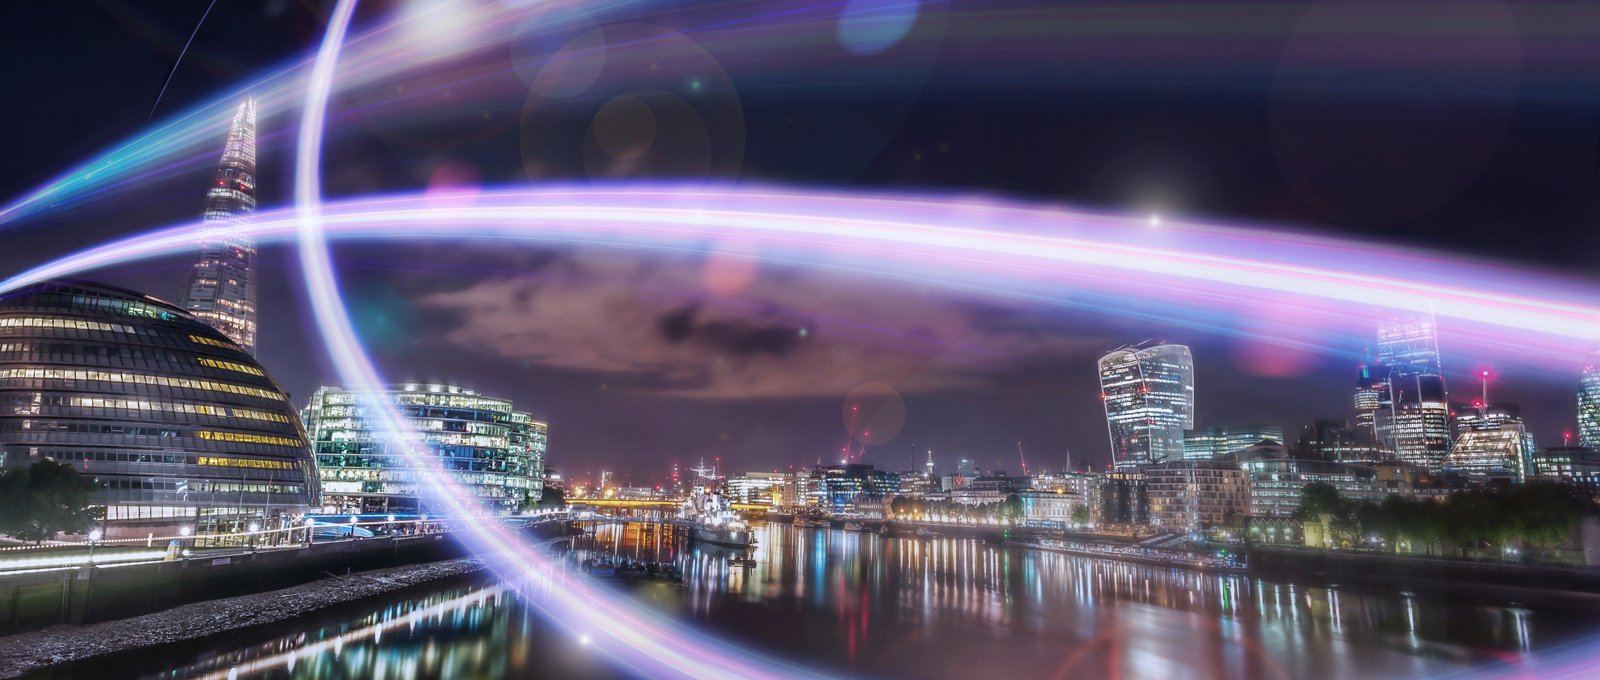 Prysmian Group extends its partnership with Openreach to support Full Fibre broadband plan